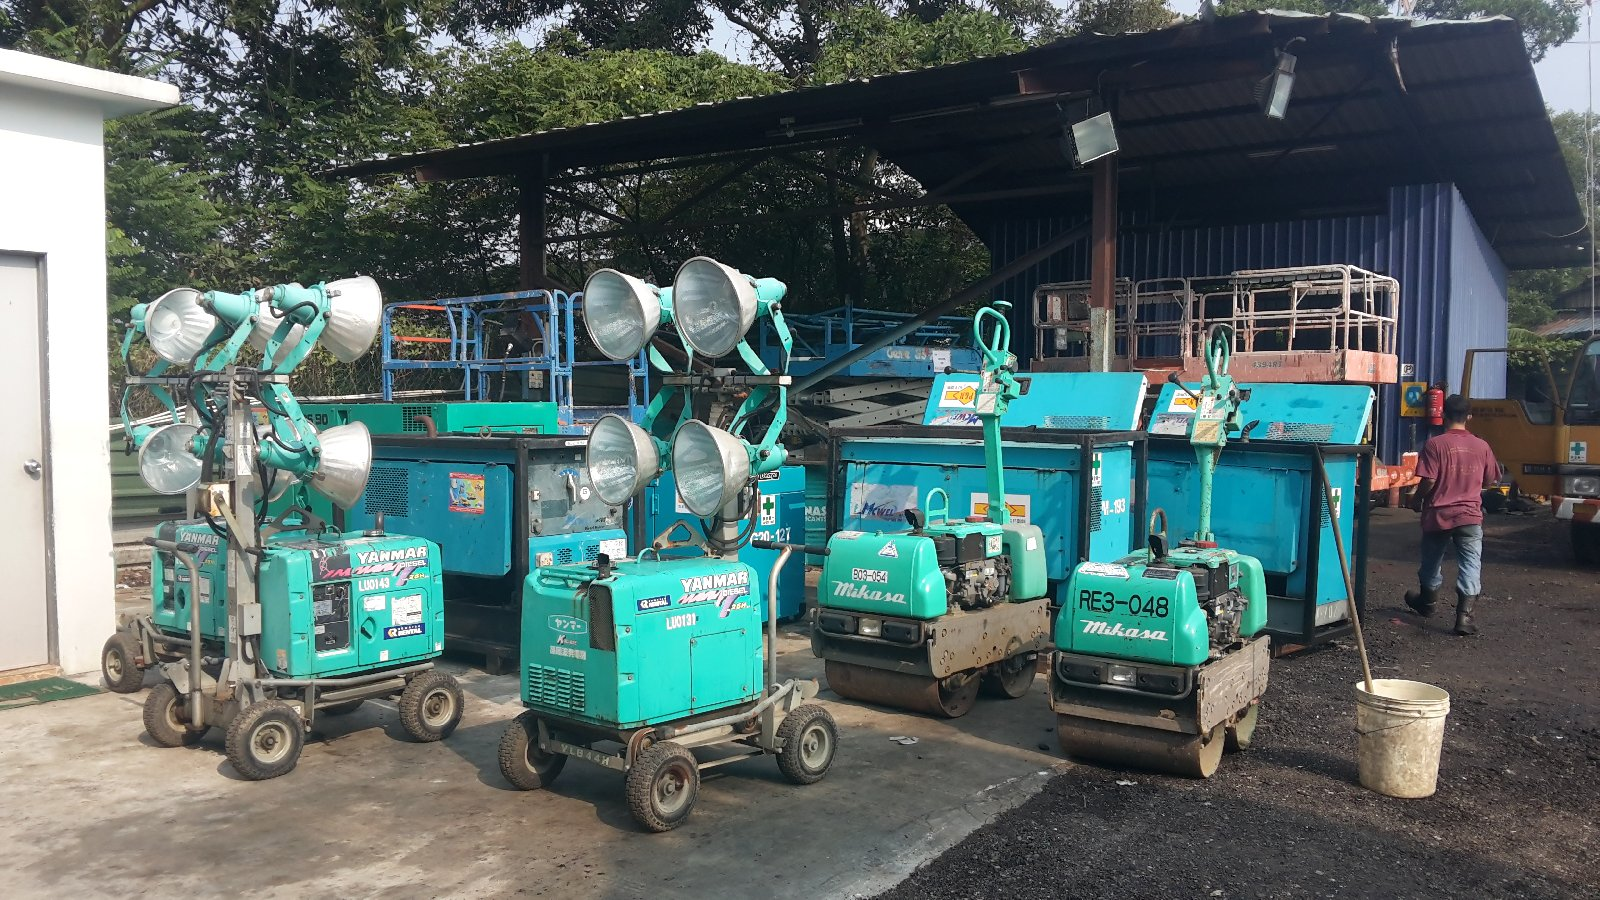 1 ton roller , Lighting tower 4x4 for sales/ rent in Johor and petronas melaka